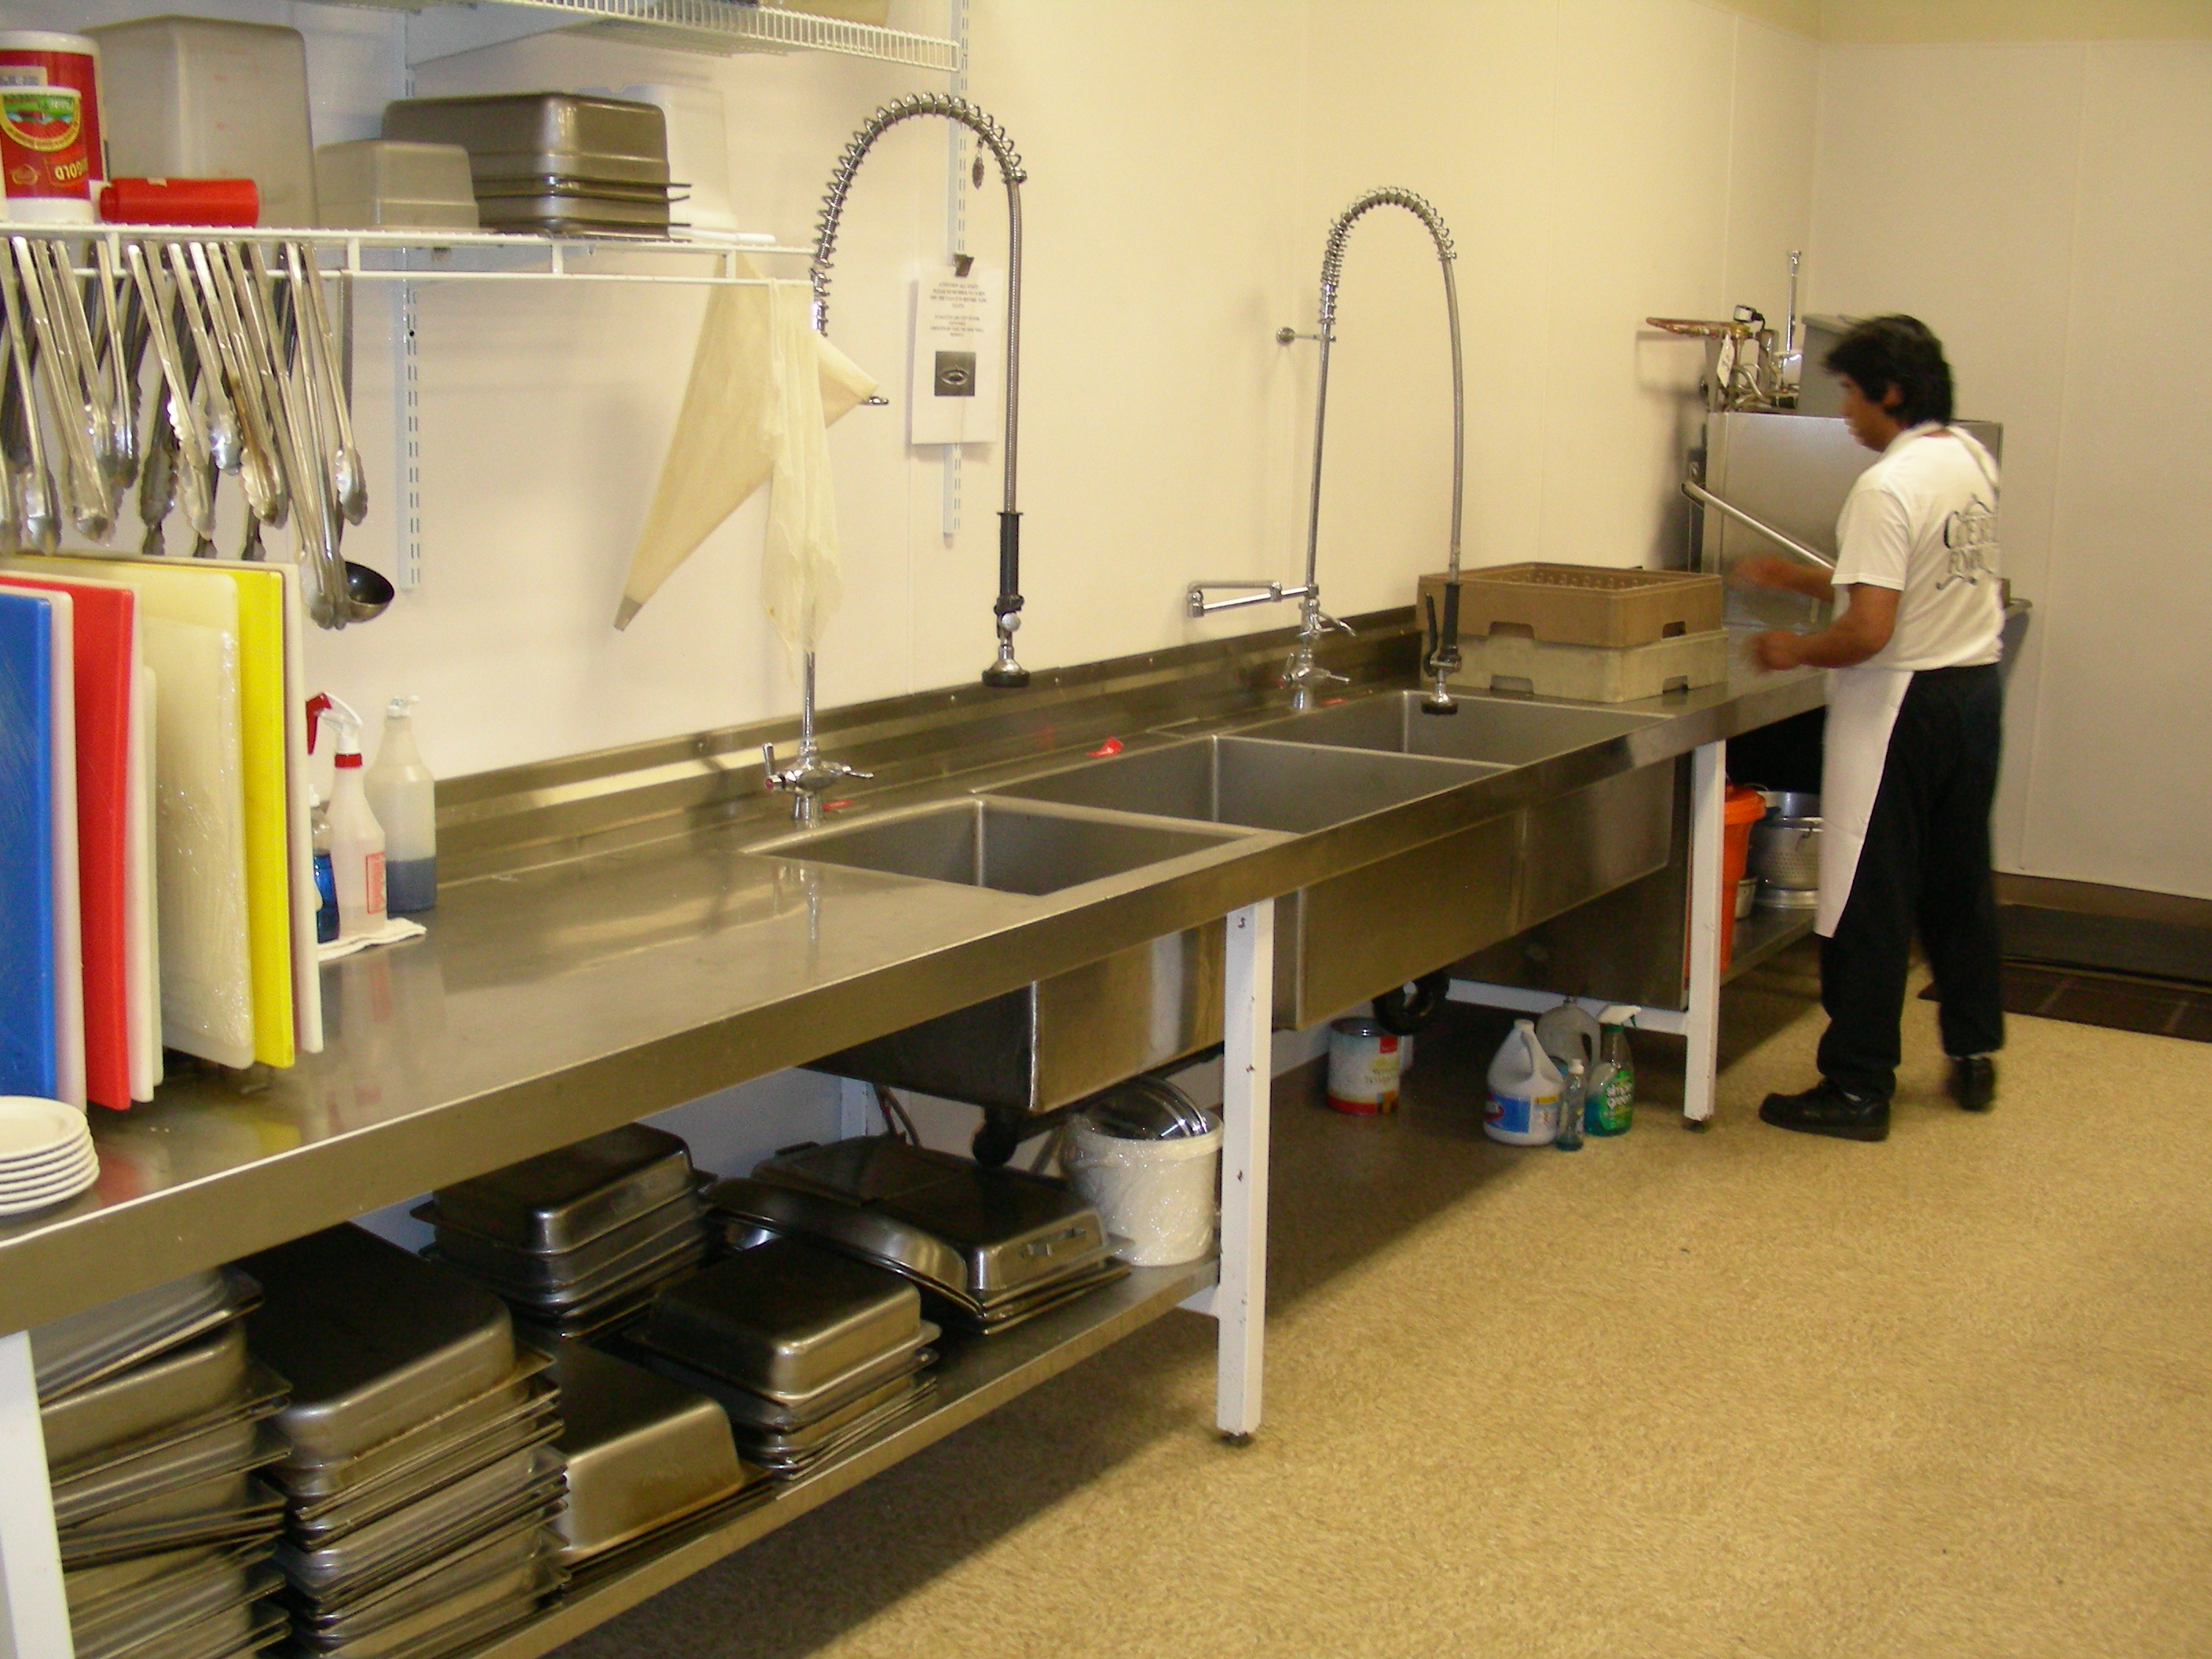 Commercial Kitchen Sink With Drainboard